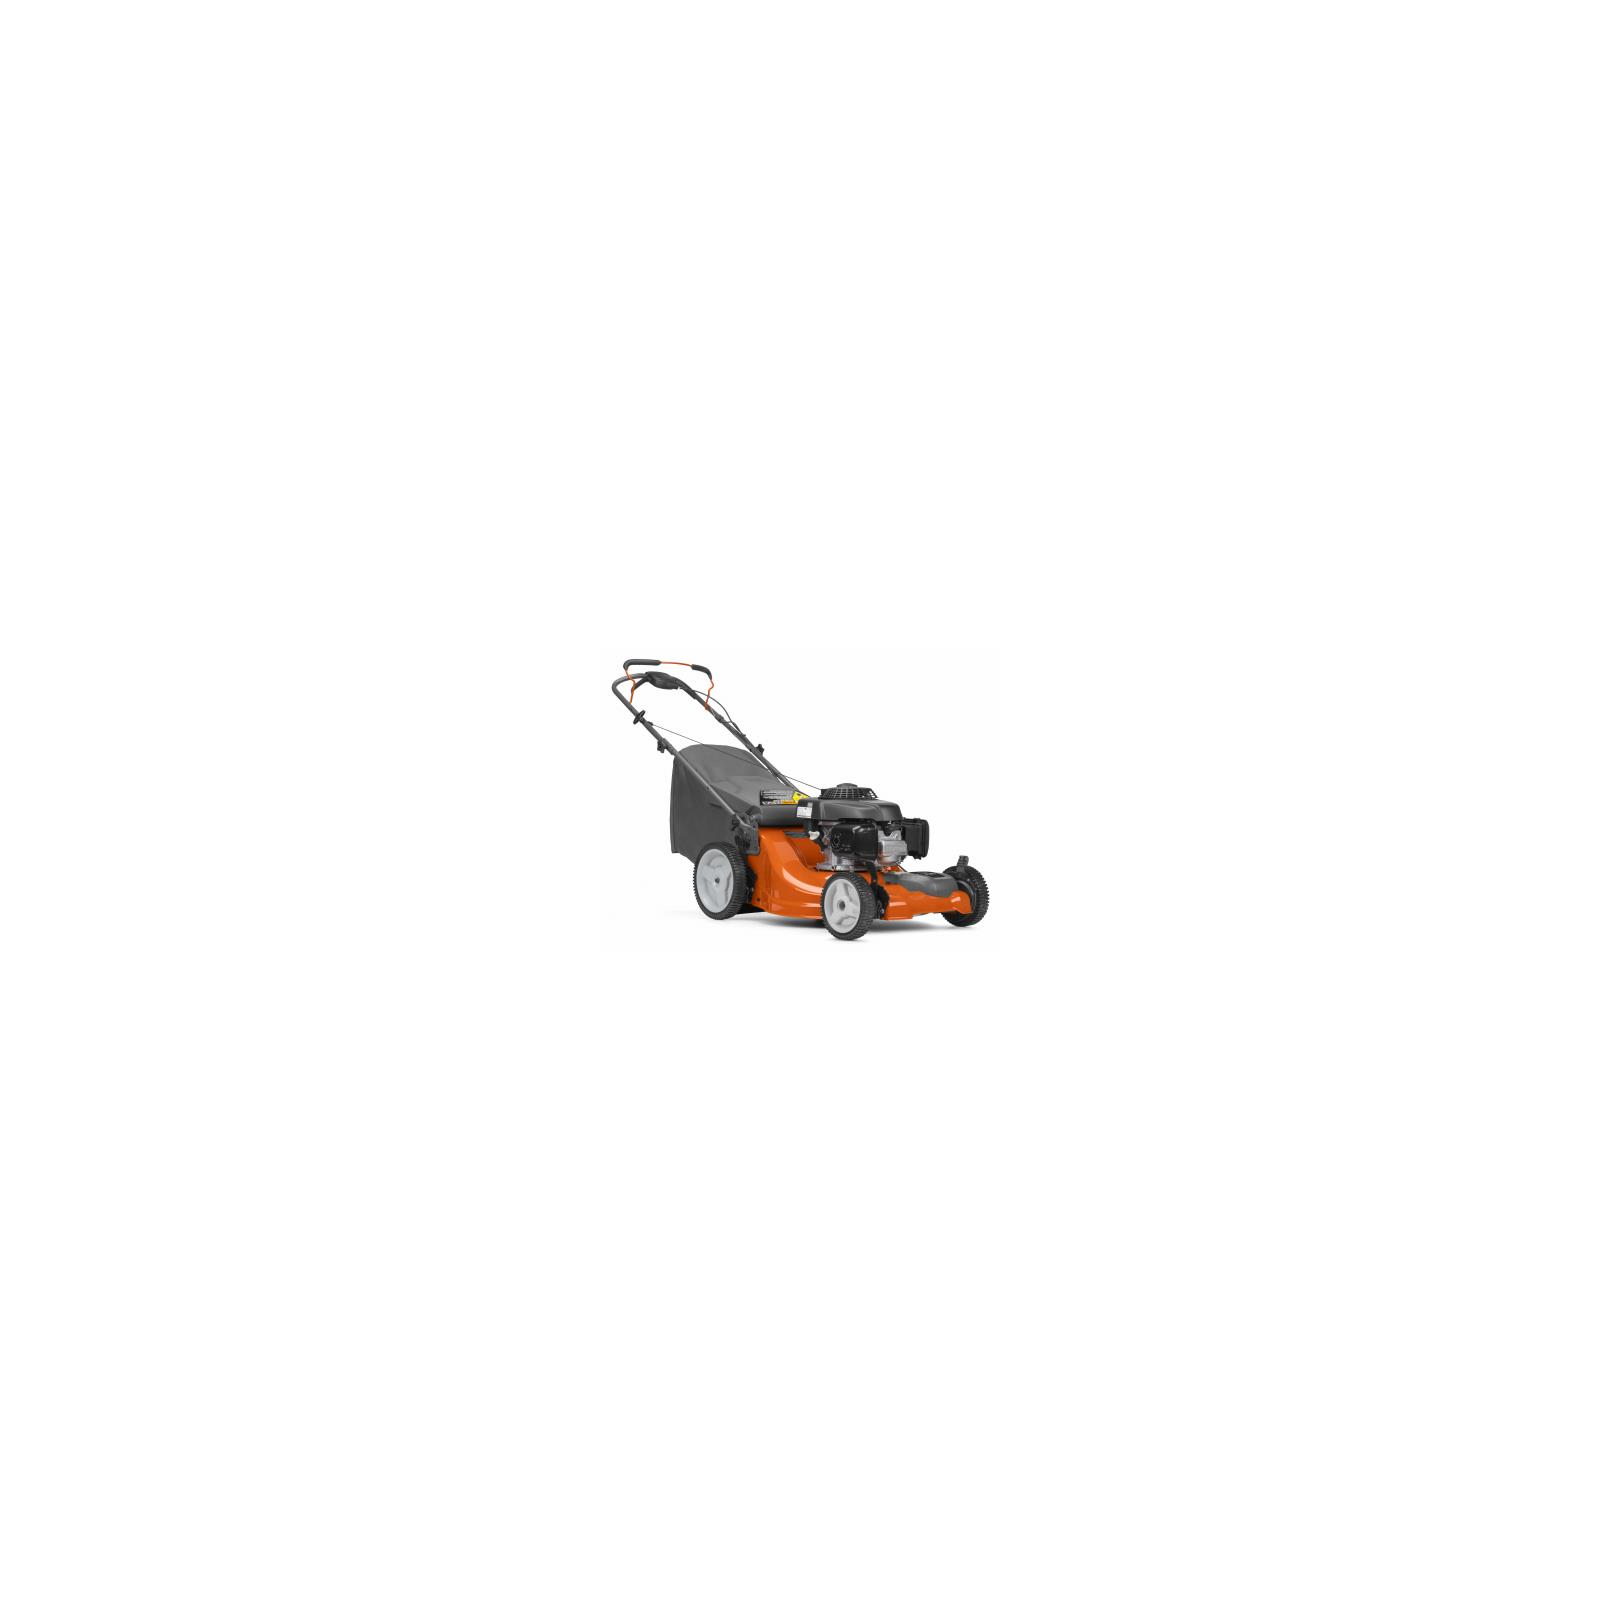 Husqvarna Outdoor Products LC221FH 961450036 Autowalk 3-In-1 Self-Propelled Lawn Mower, Variable Speed 160cc... by HUSQVARNA OUTDOOR PRODUCTS